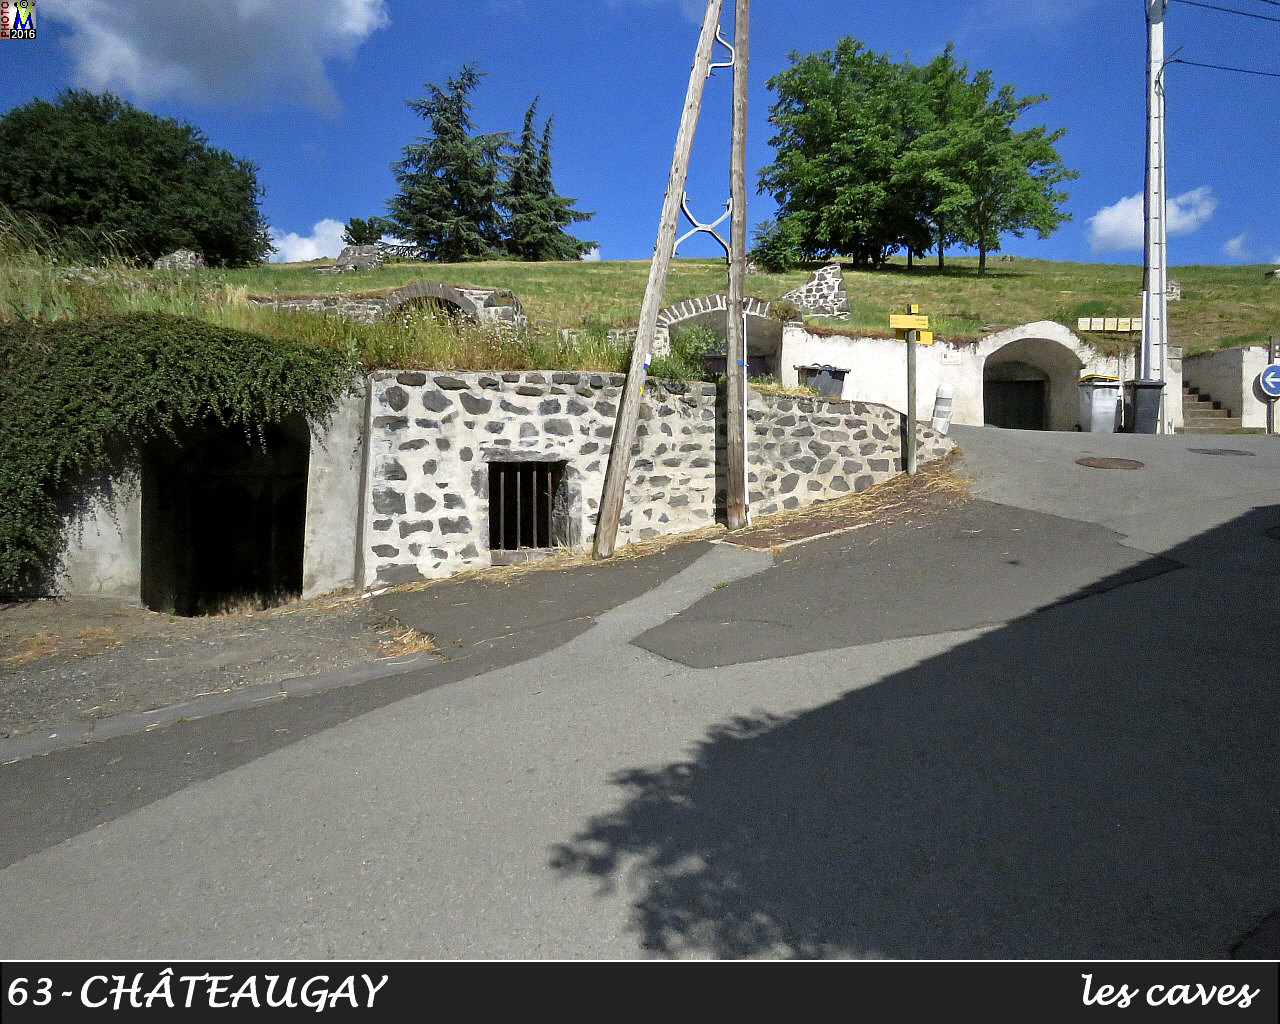 63CHATEAUGAY_caves_102.jpg